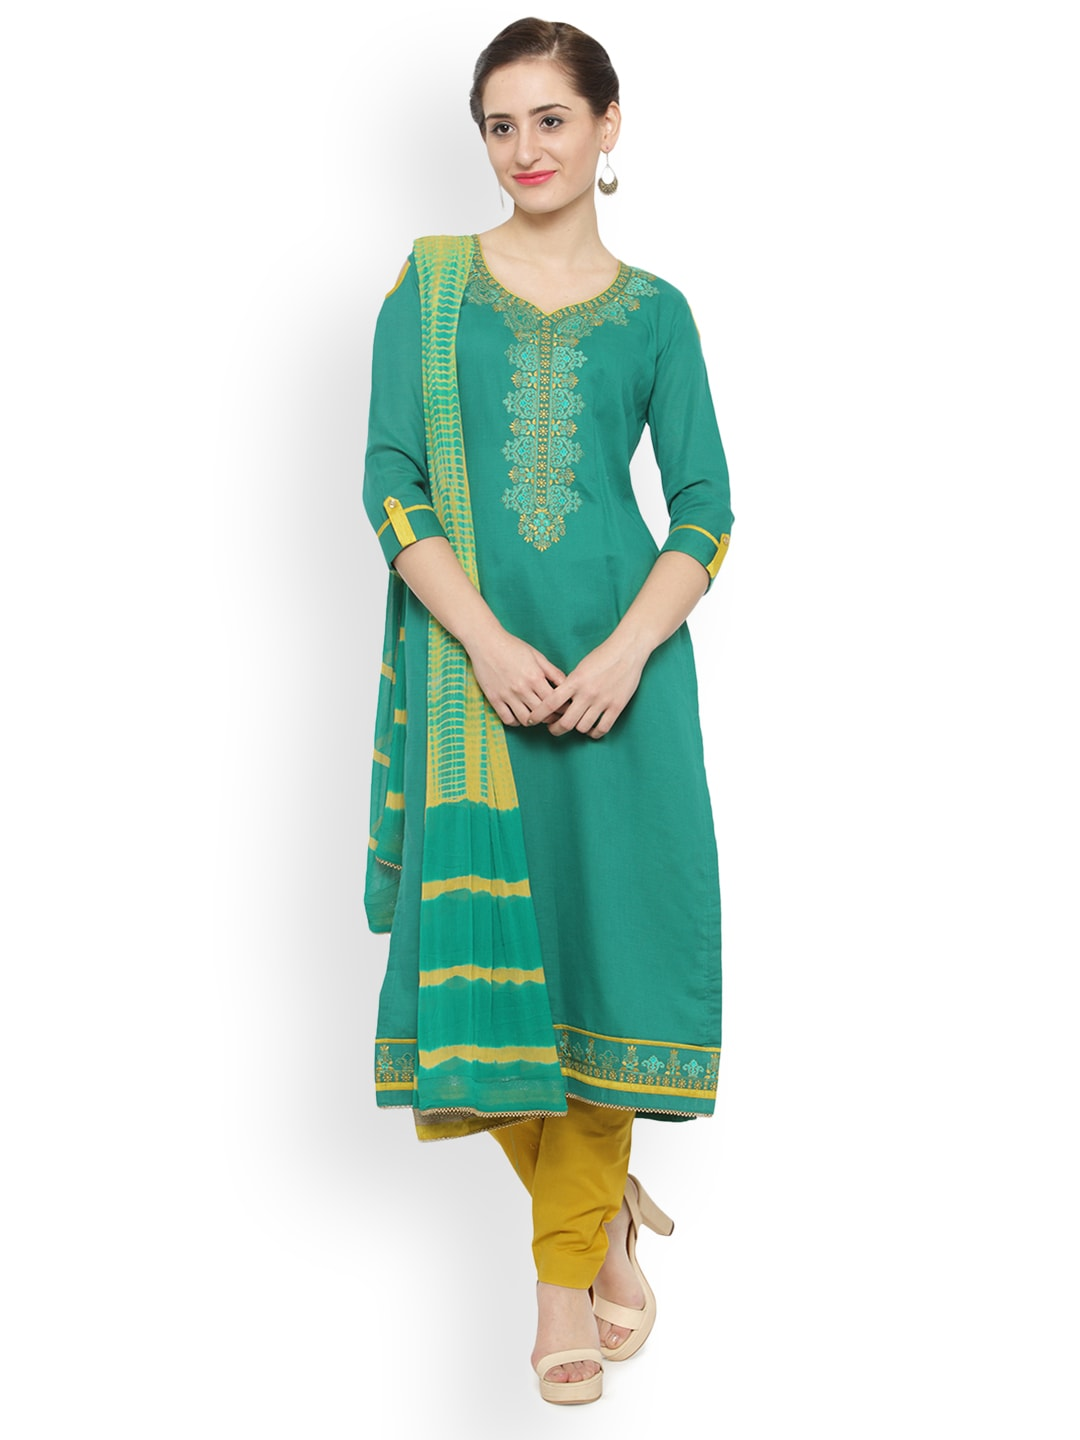 Kvsfab Green & Yellow Cotton Blend Unstitched Dress Material image